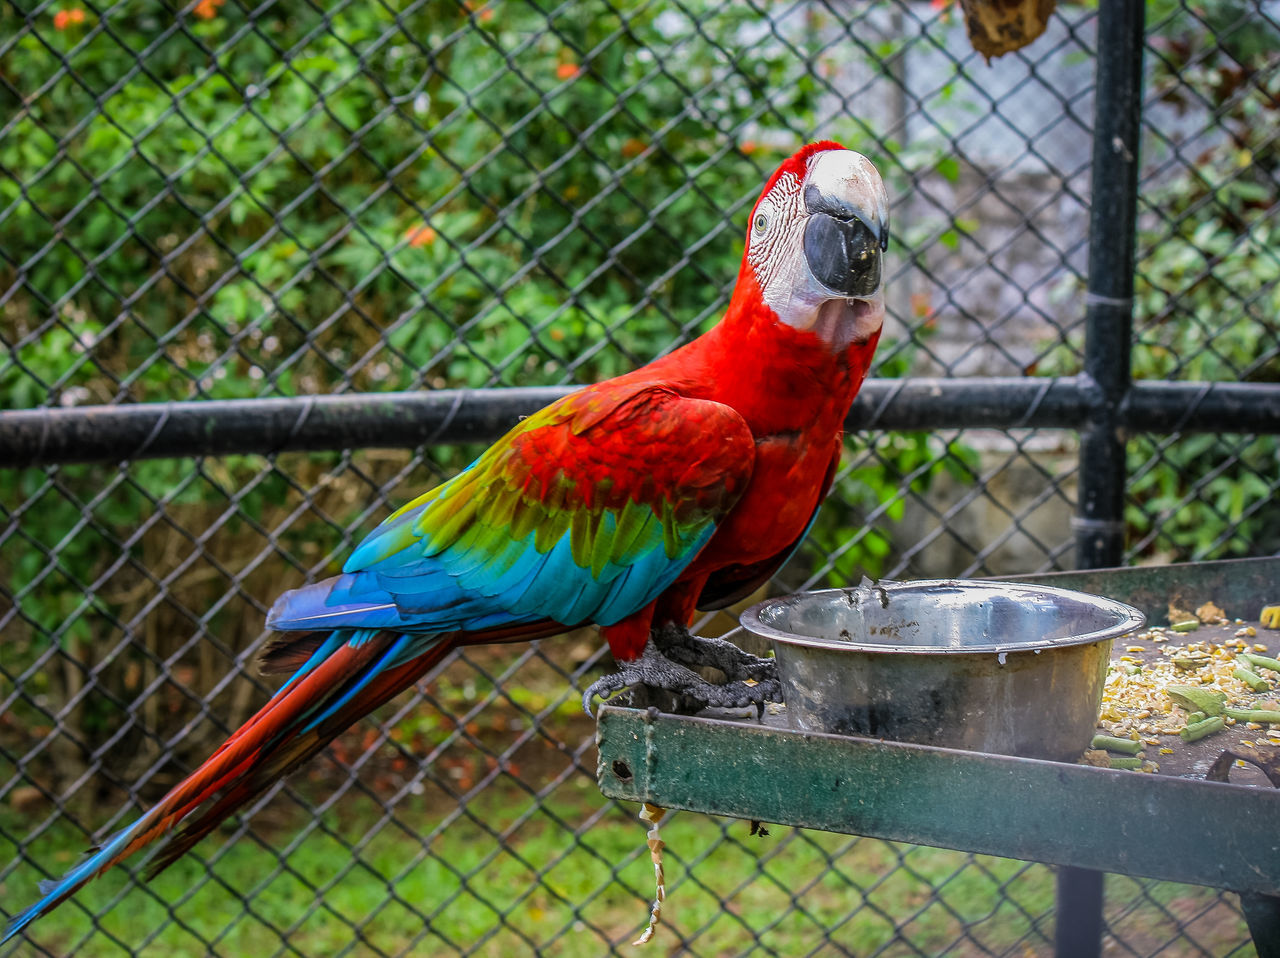 Taking Photos Relaxing Check This Out Enjoying Life Trinidad And Tobago Nature Photography Zoophotography Zoo Animals  Birds🐦⛅ Emperorvalleyzoo Bird Posing Zoo Photography